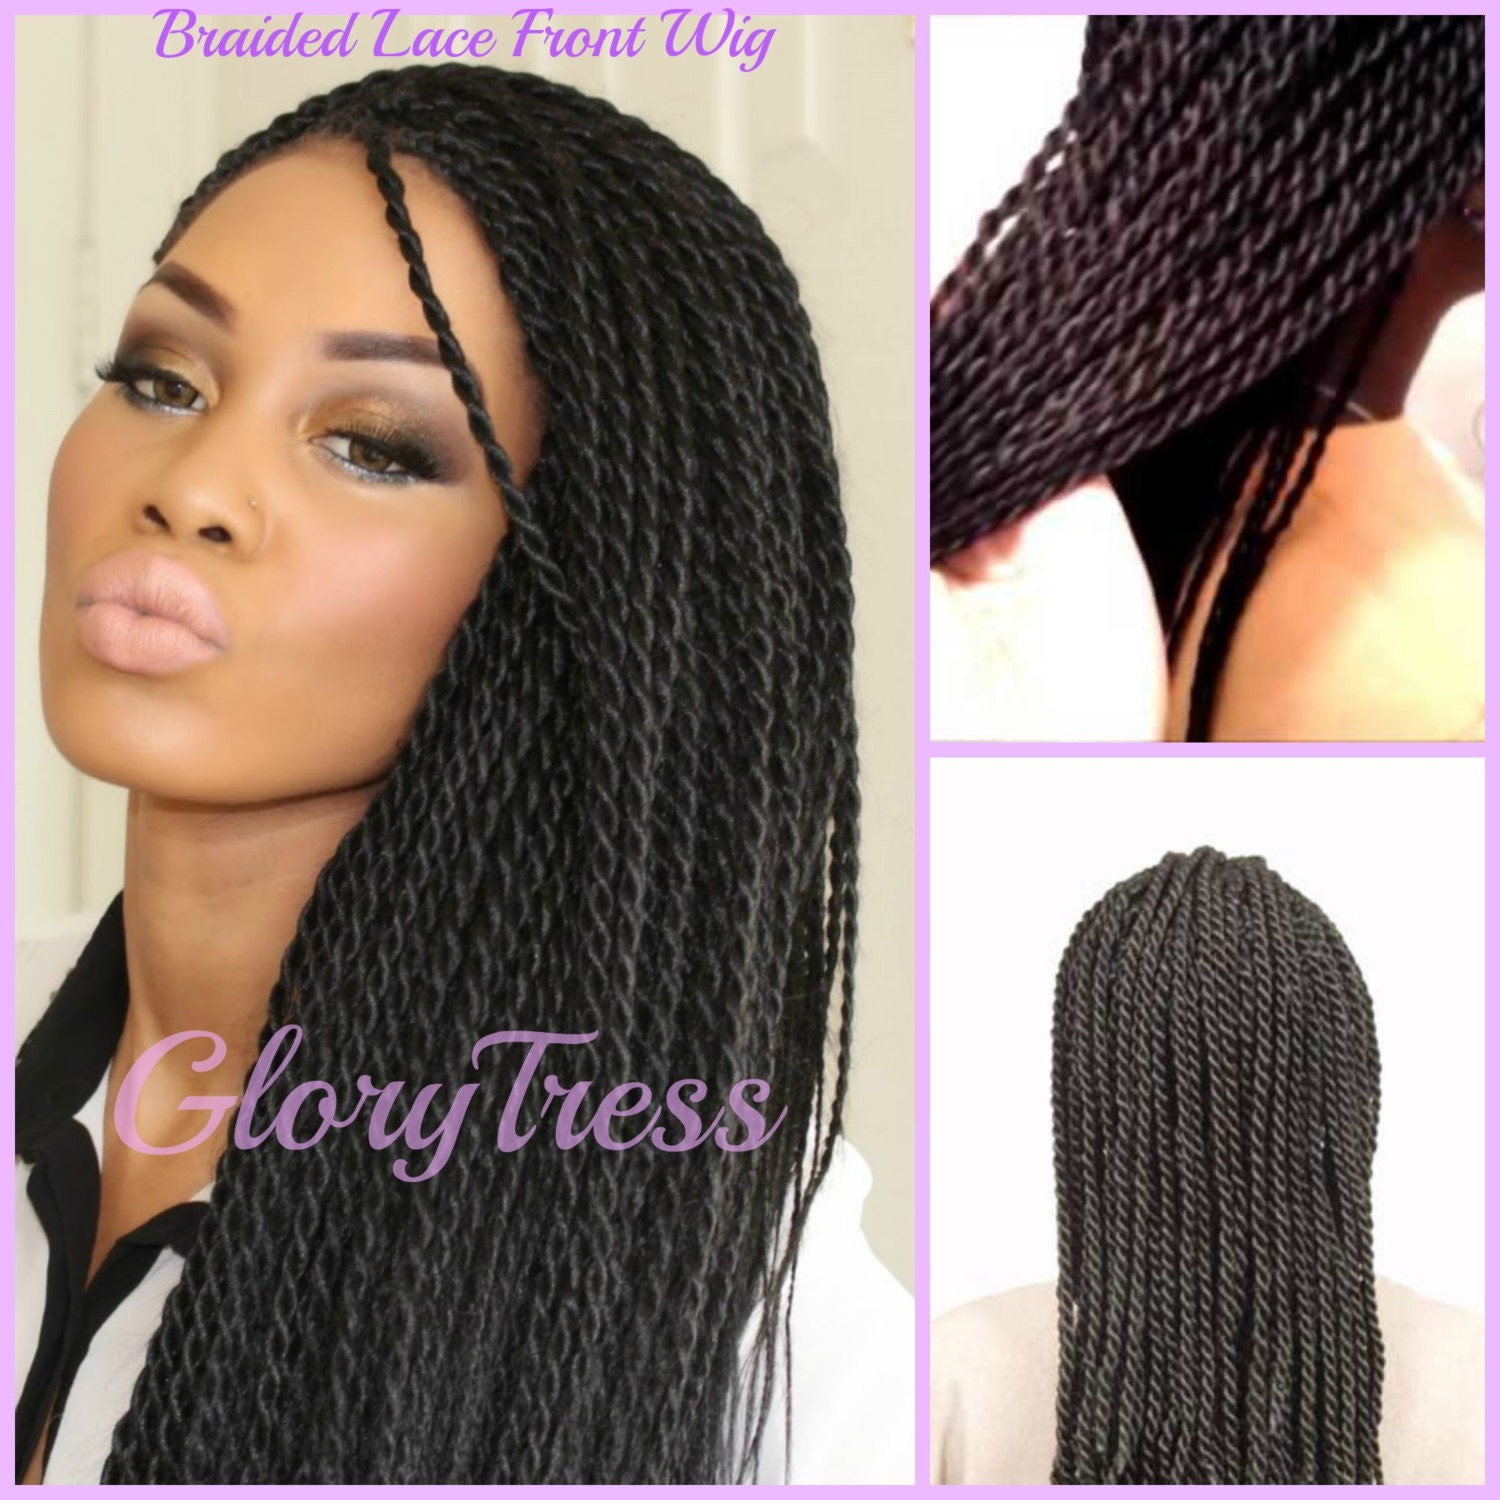 On Sale Senegalese Twists Braided Lace Front Wig By